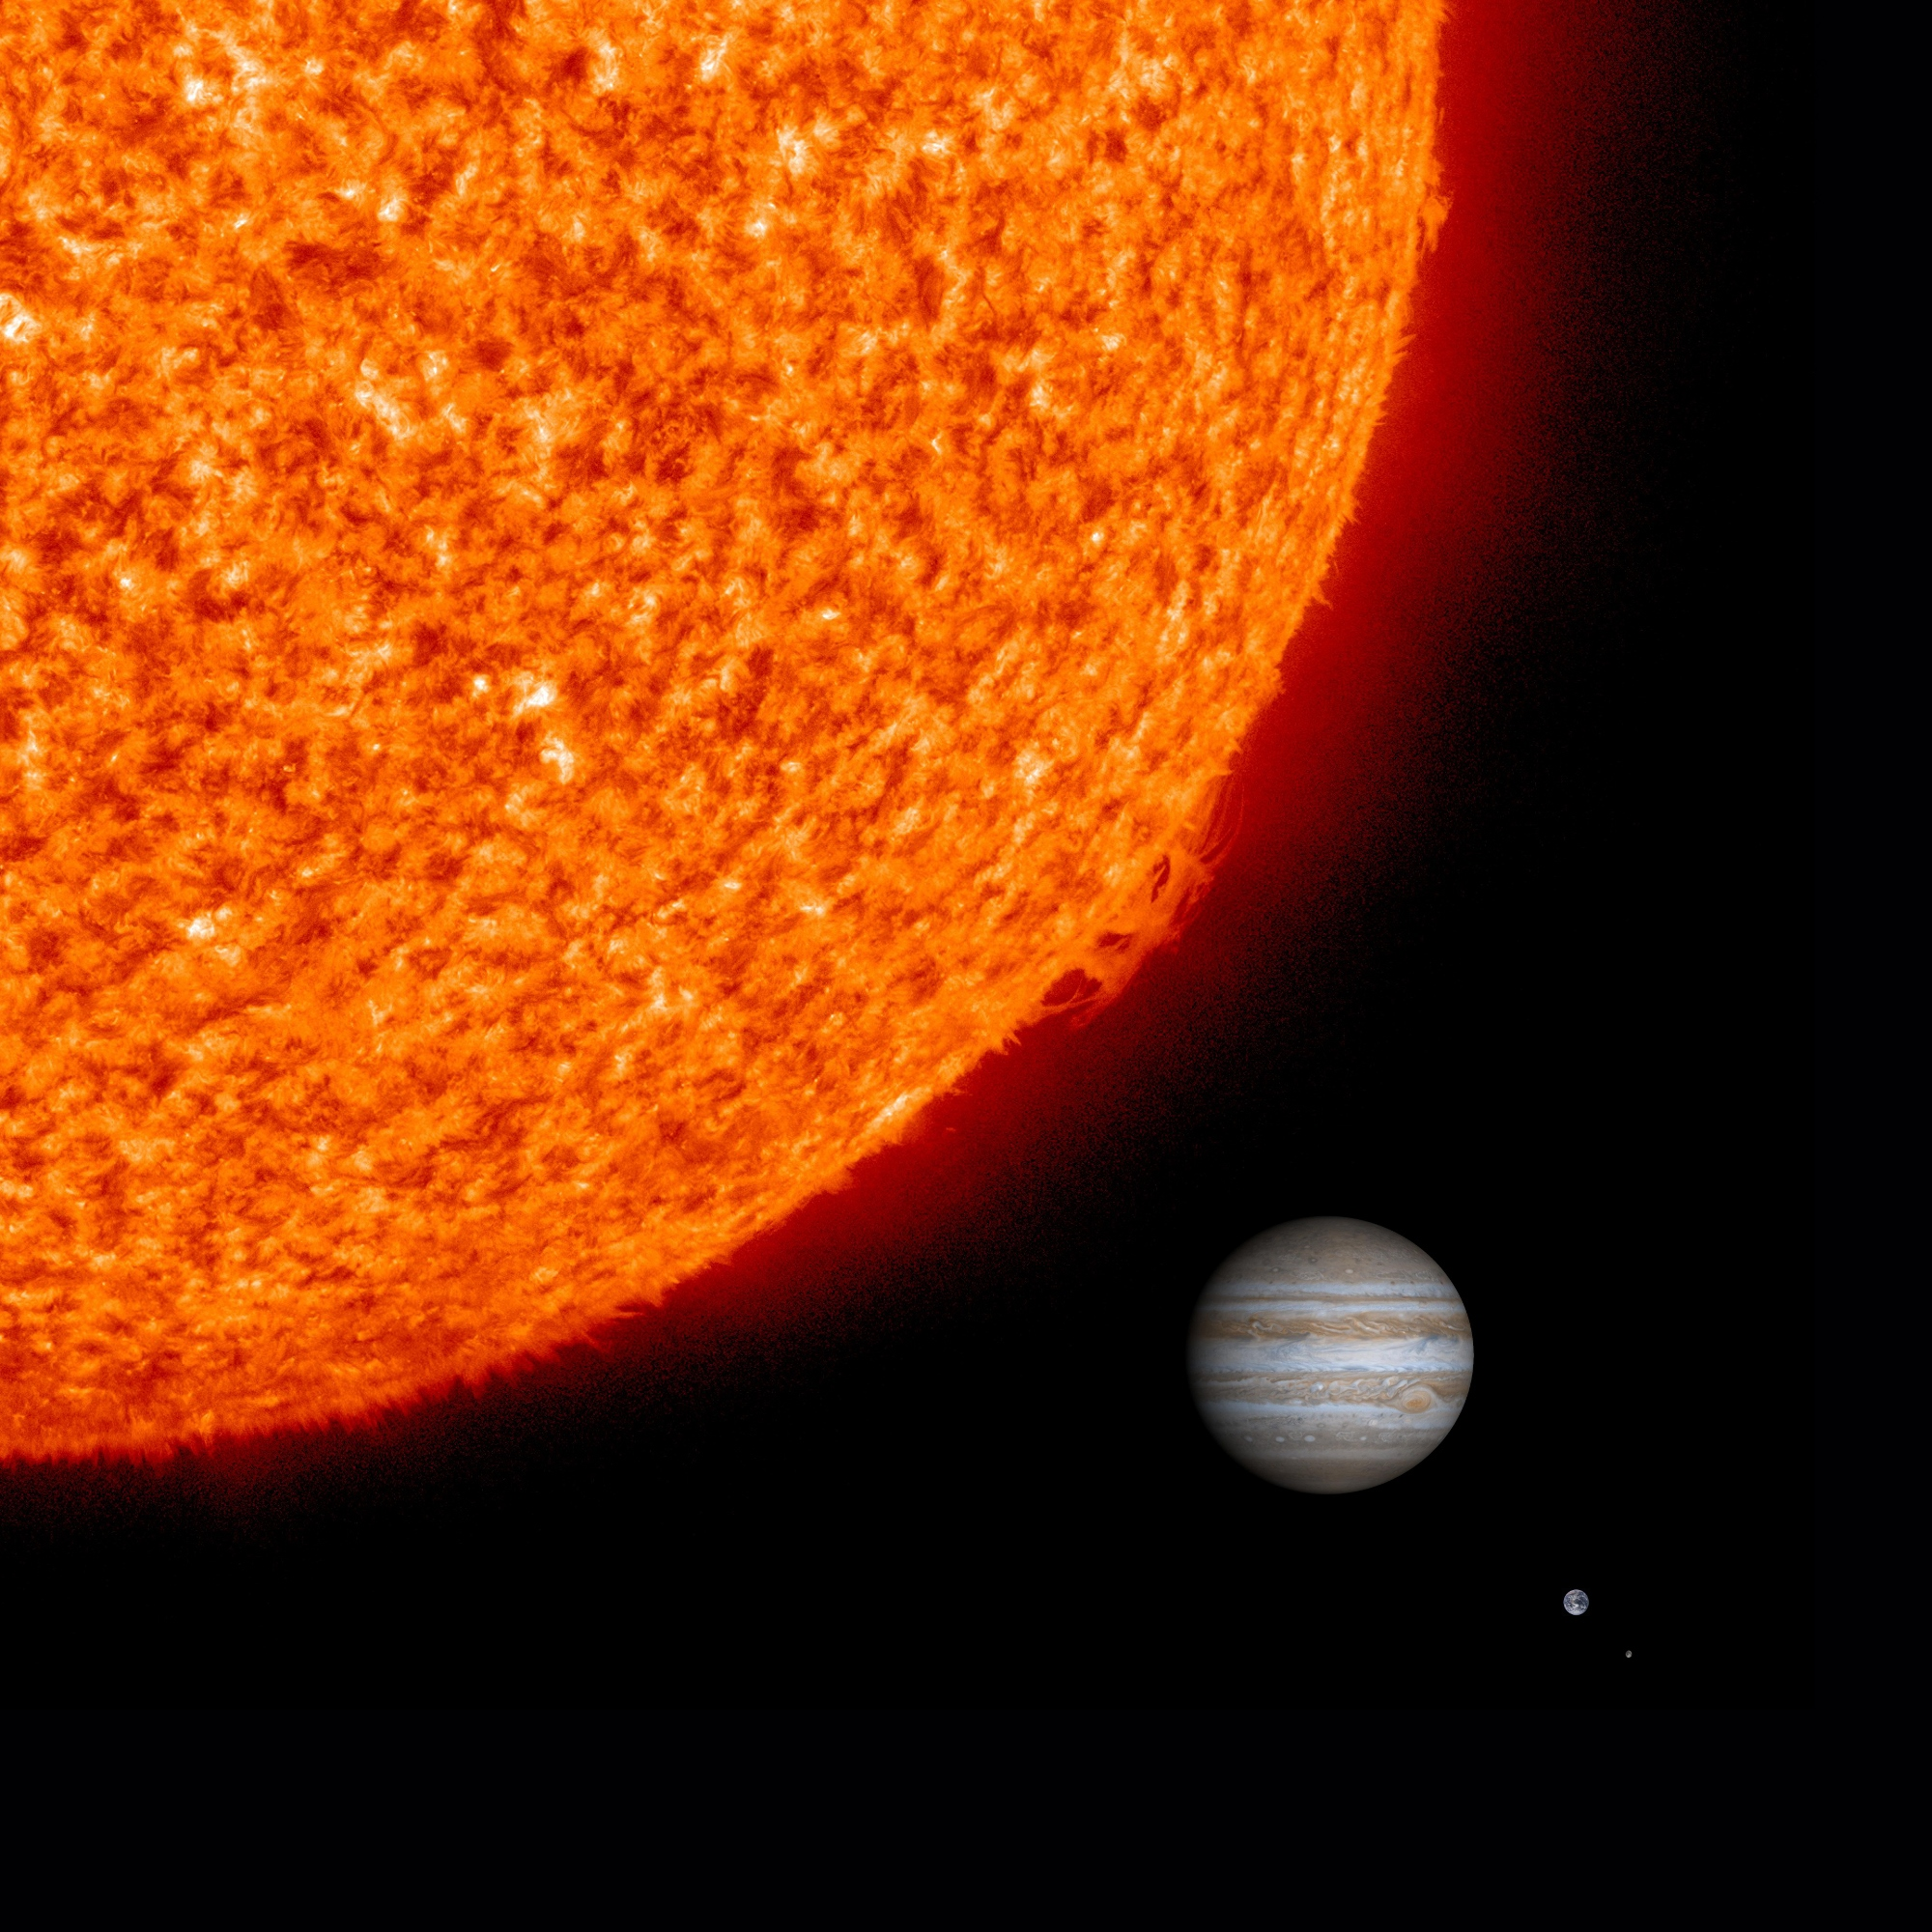 Jupiter as compared to the sun